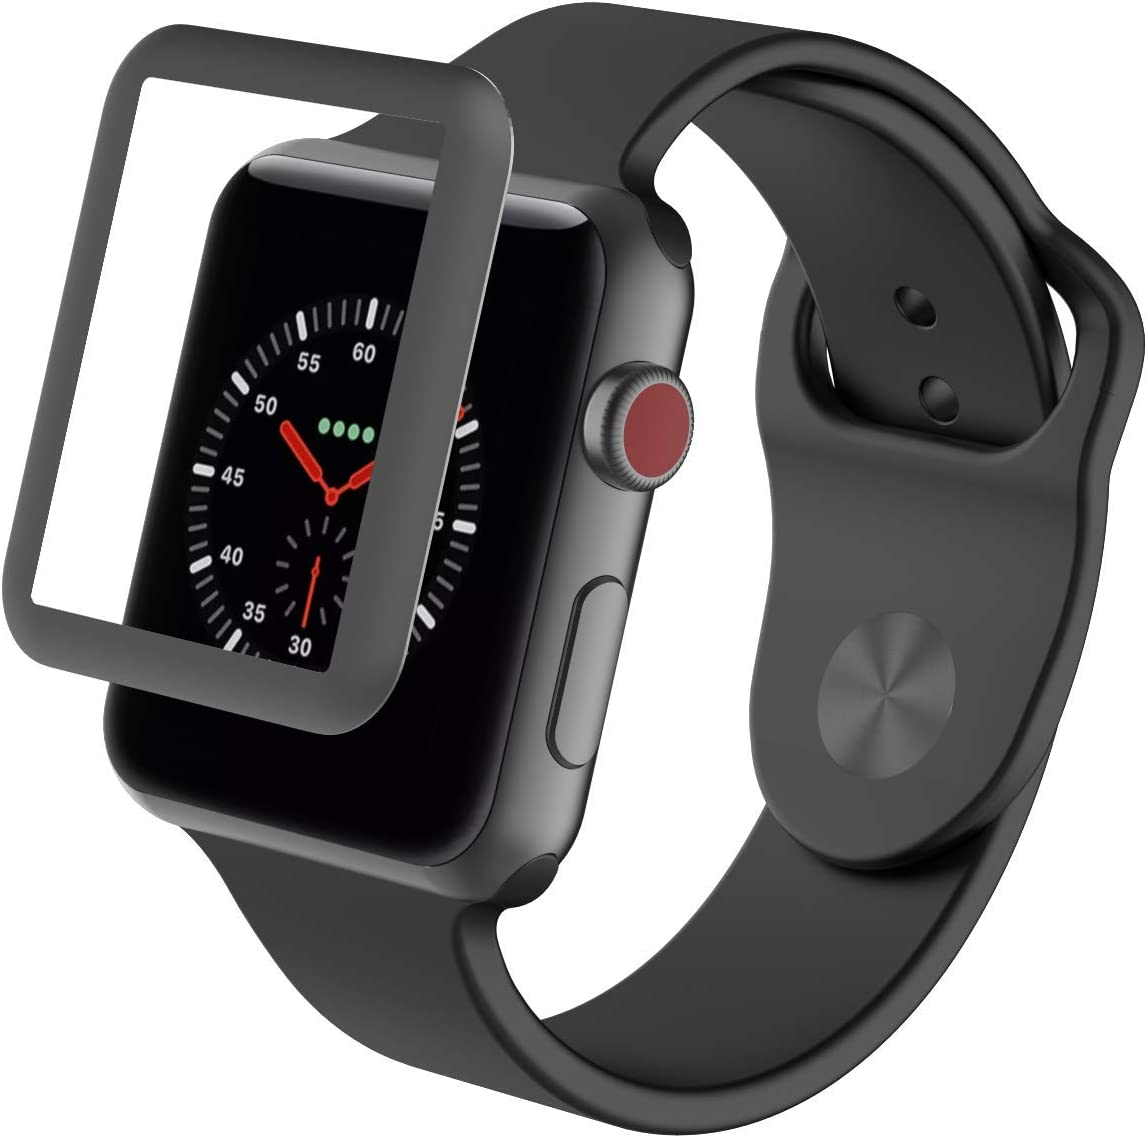 ZAGG InvisibleShield Glass Luxe HD Clarity + Reinforced, Tempered Glass Screen Protector for Apple Watch (42mm) Series 3 - Space Gray (200101304)